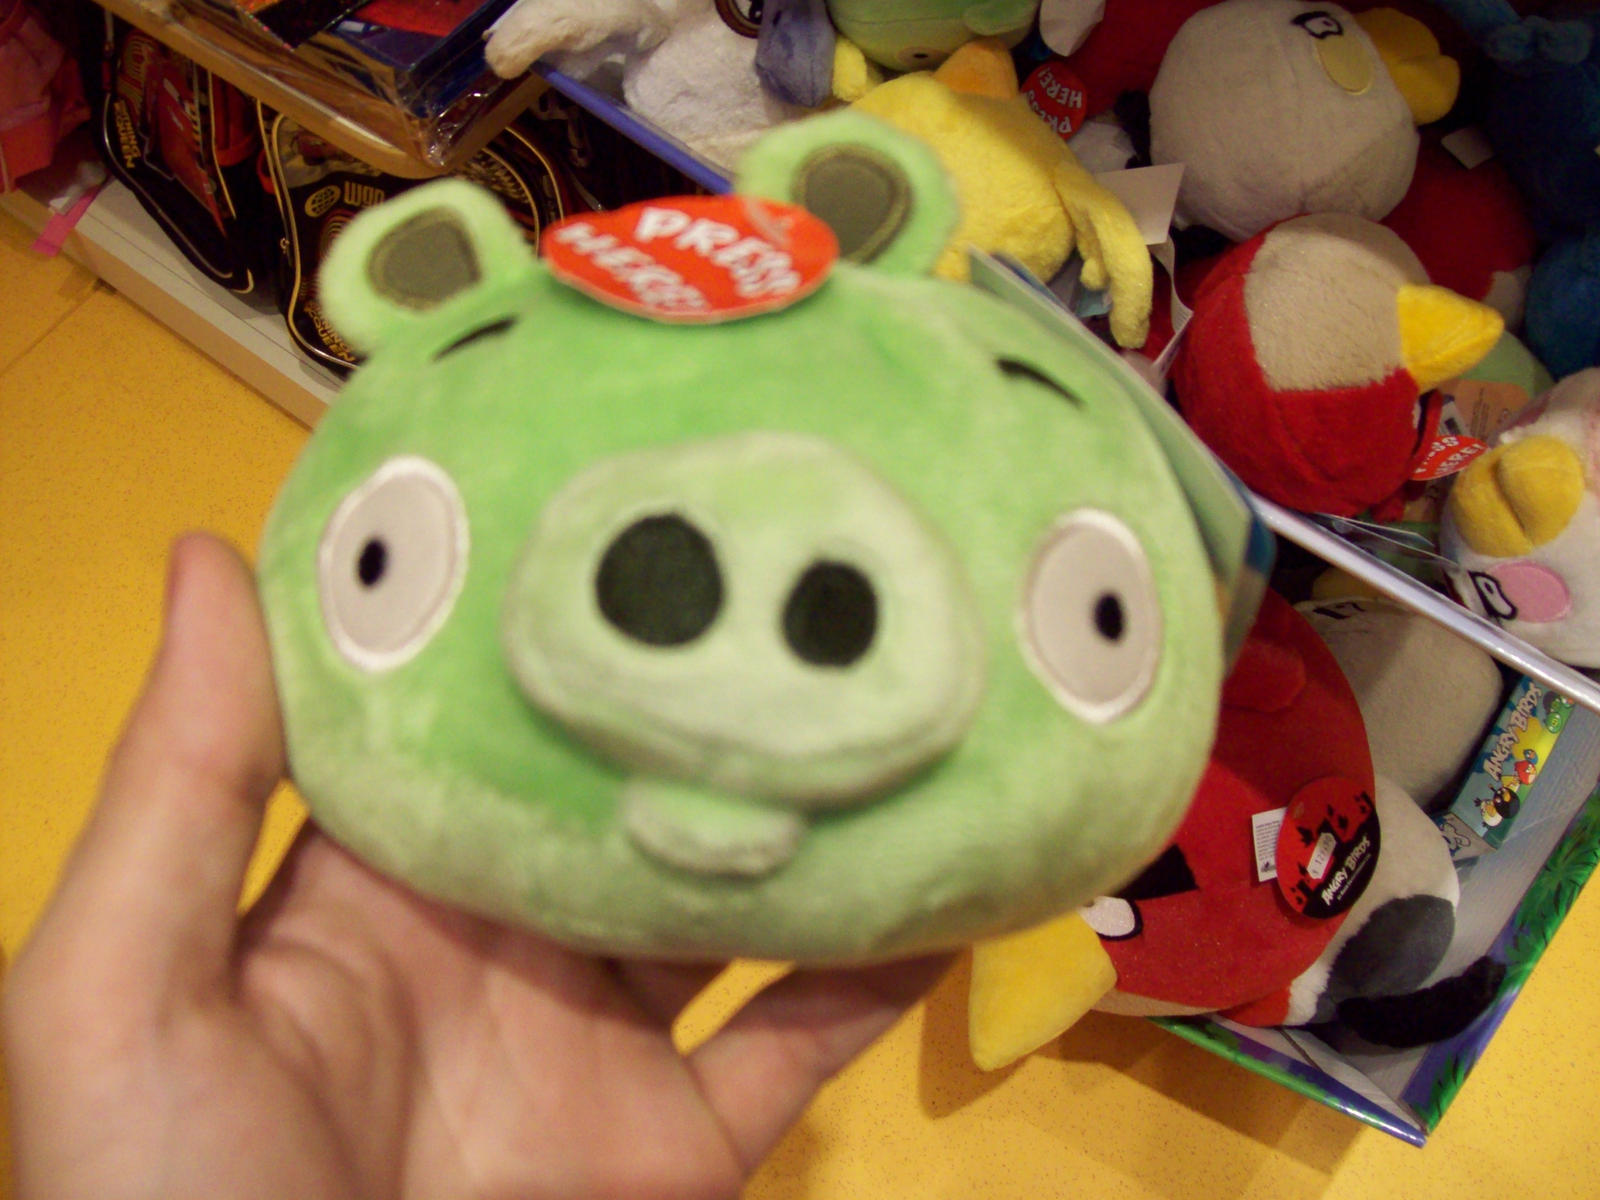 Fat Pig Angry Birds Plush Angry Birds Pigs Plush